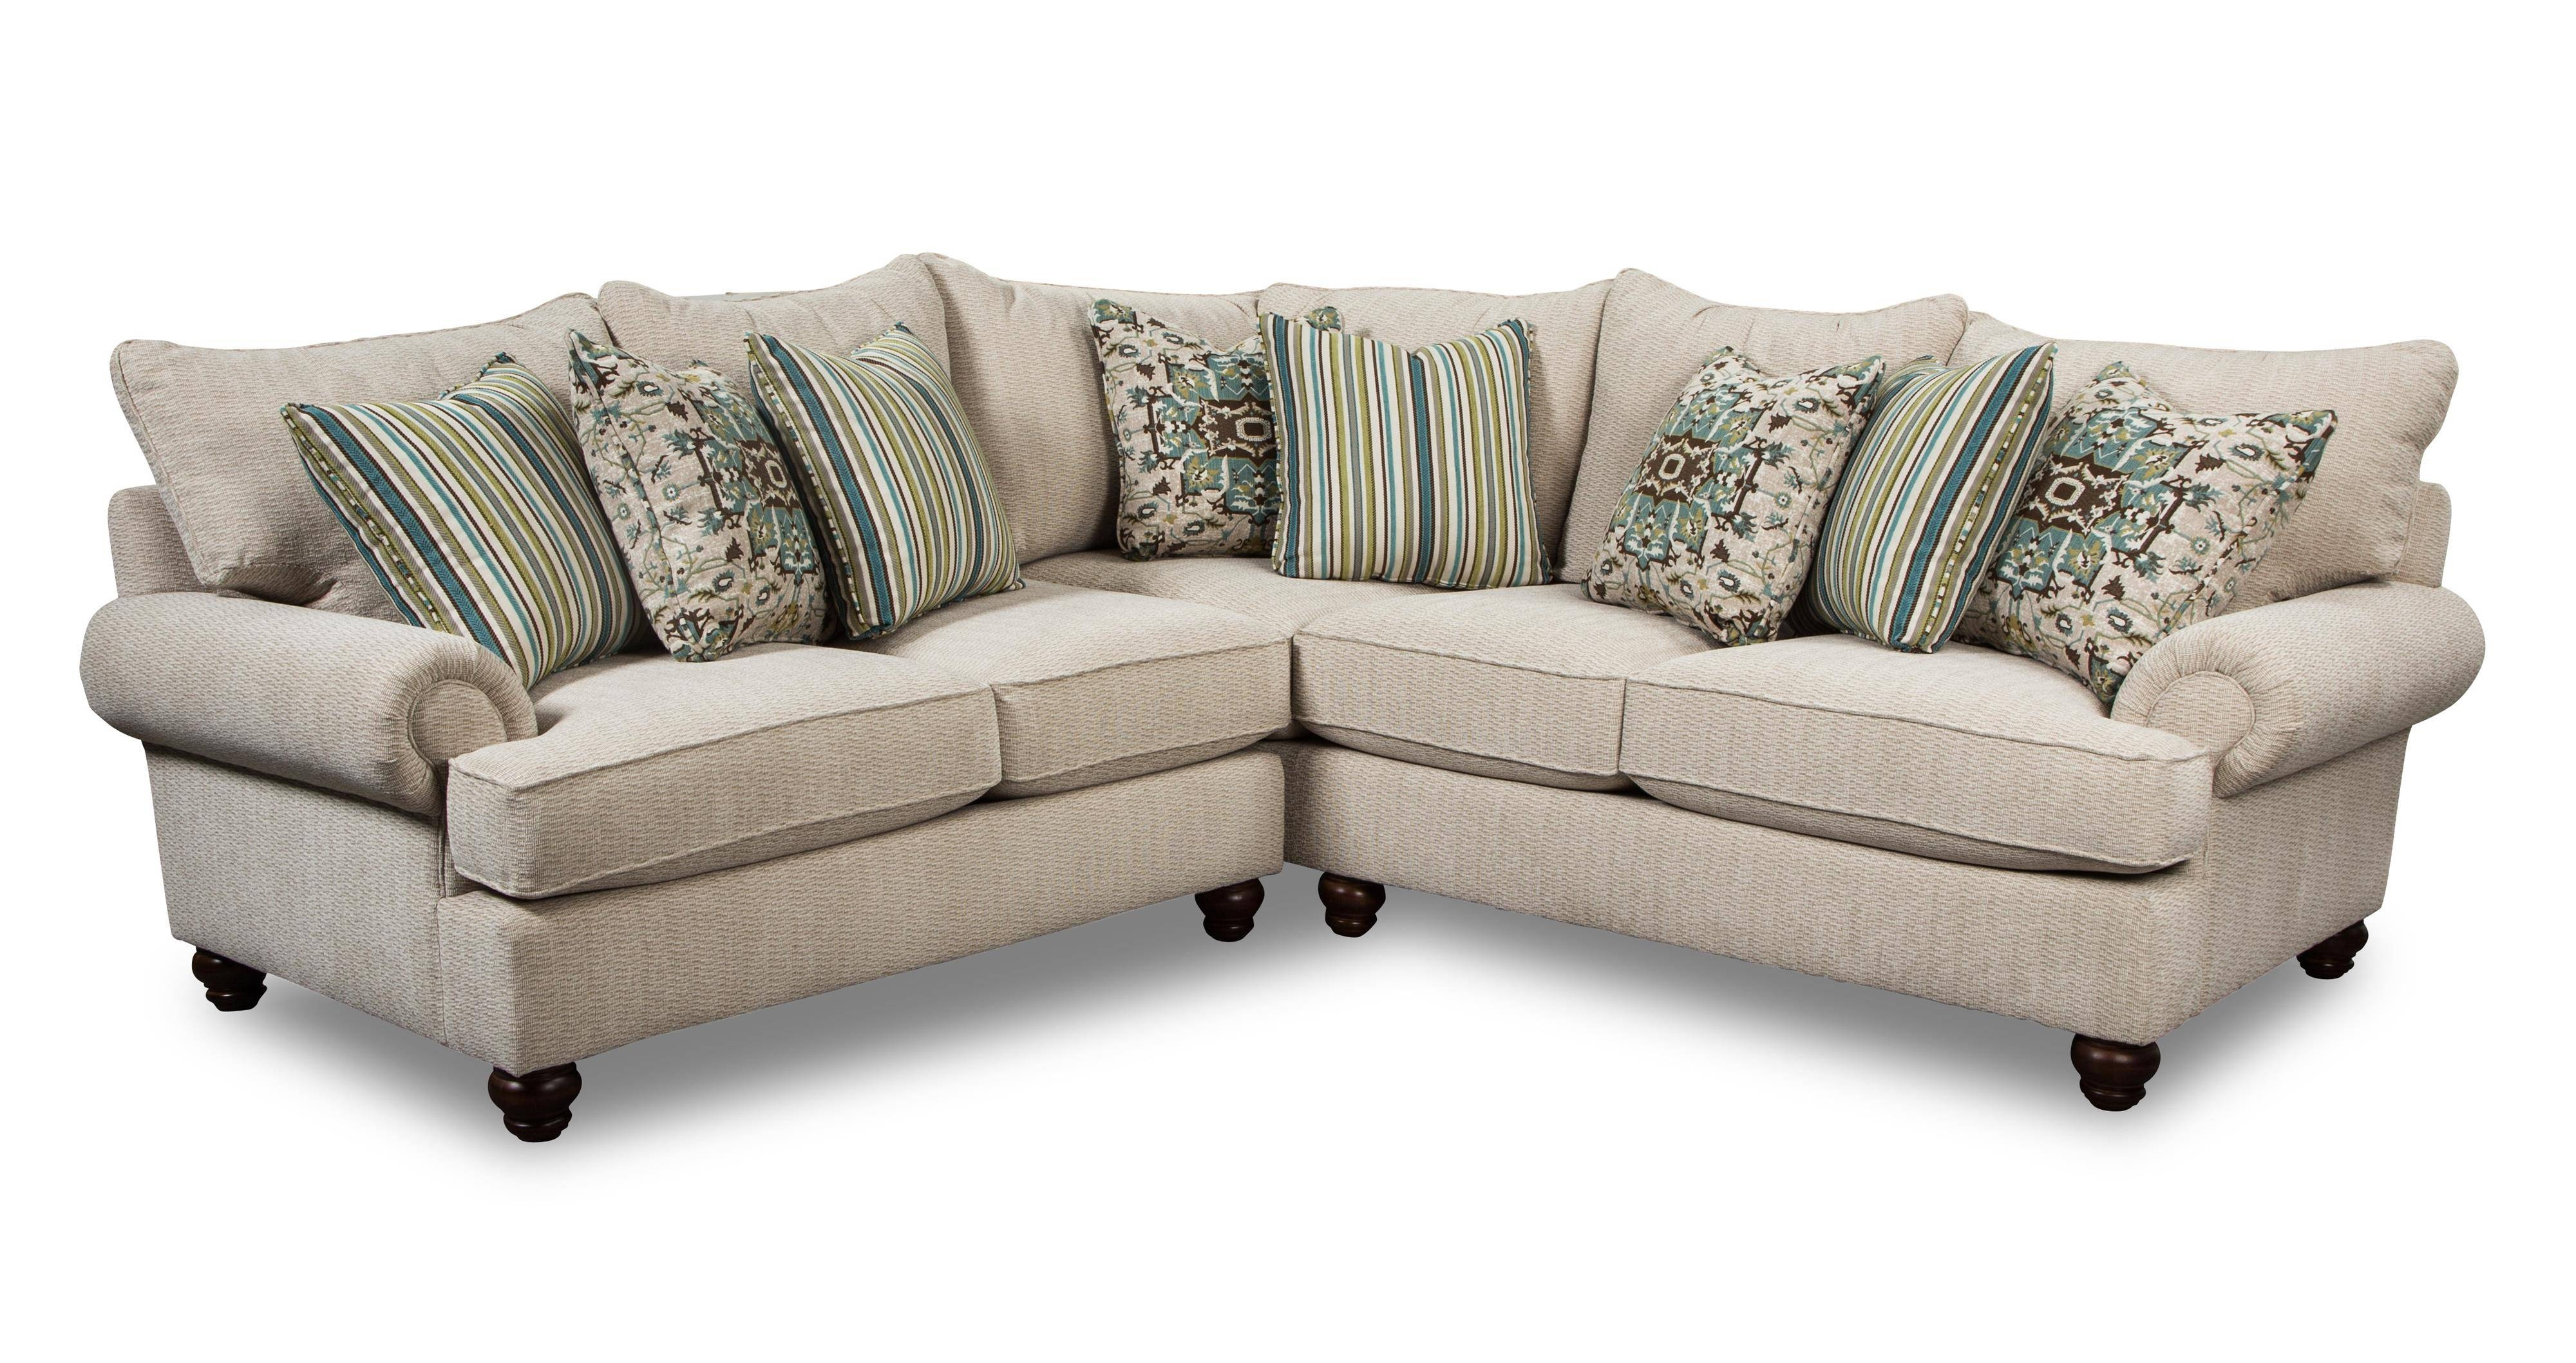 Two Piece Sectional Sofa With Turned Wood Feetcraftmaster intended for Craftmaster Sectional Sofa (Image 28 of 30)